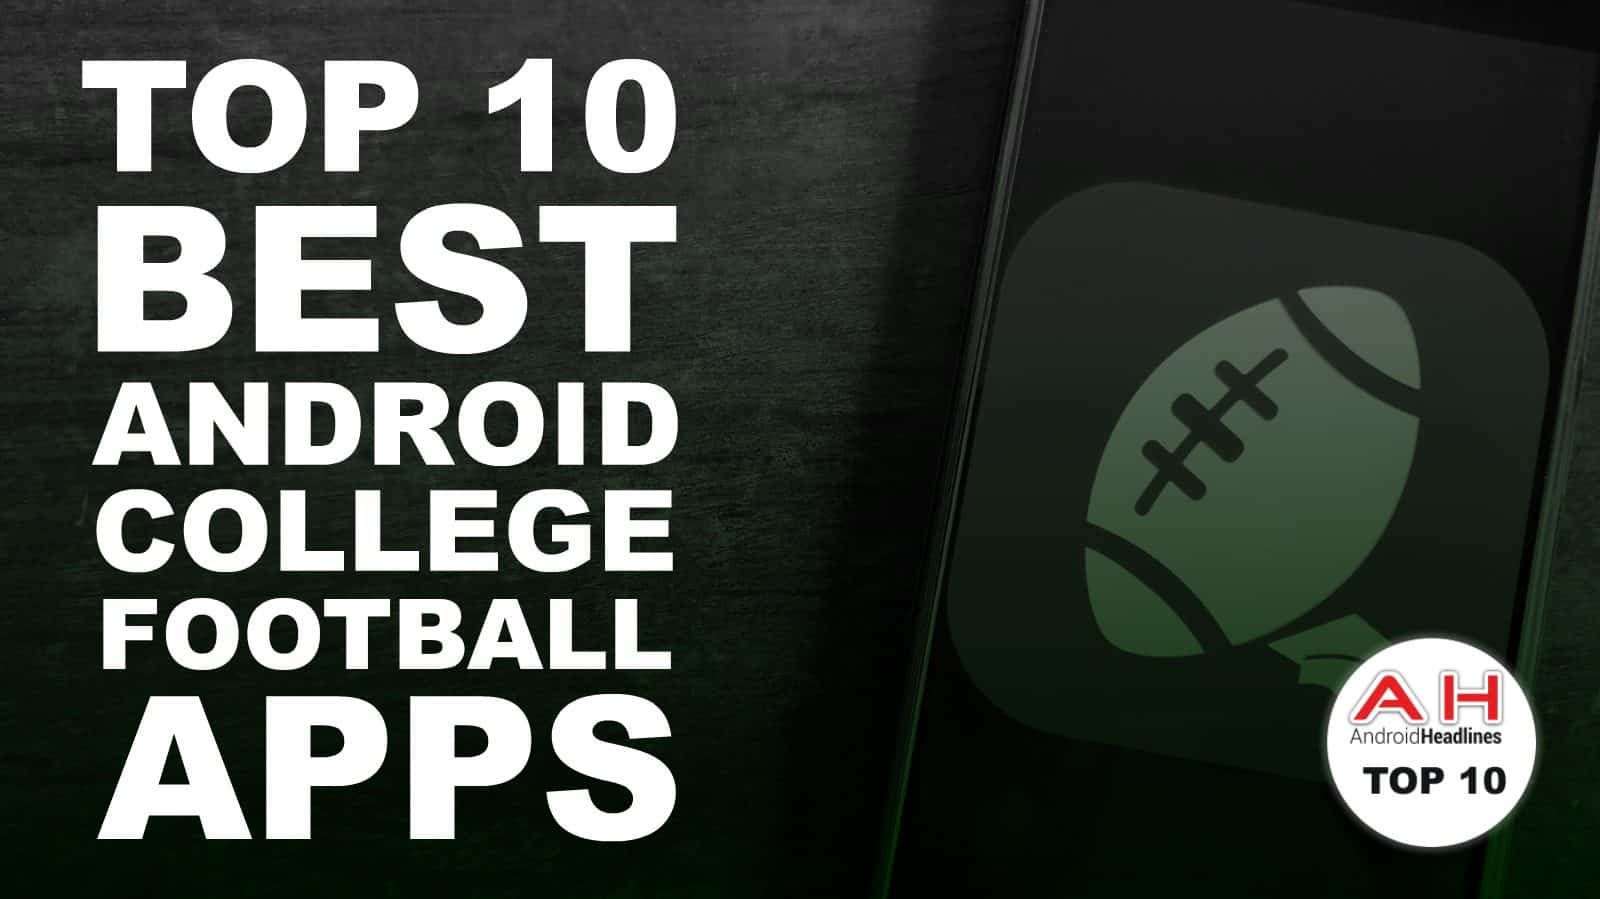 Top 10 Best Android Apps College Football September 2018